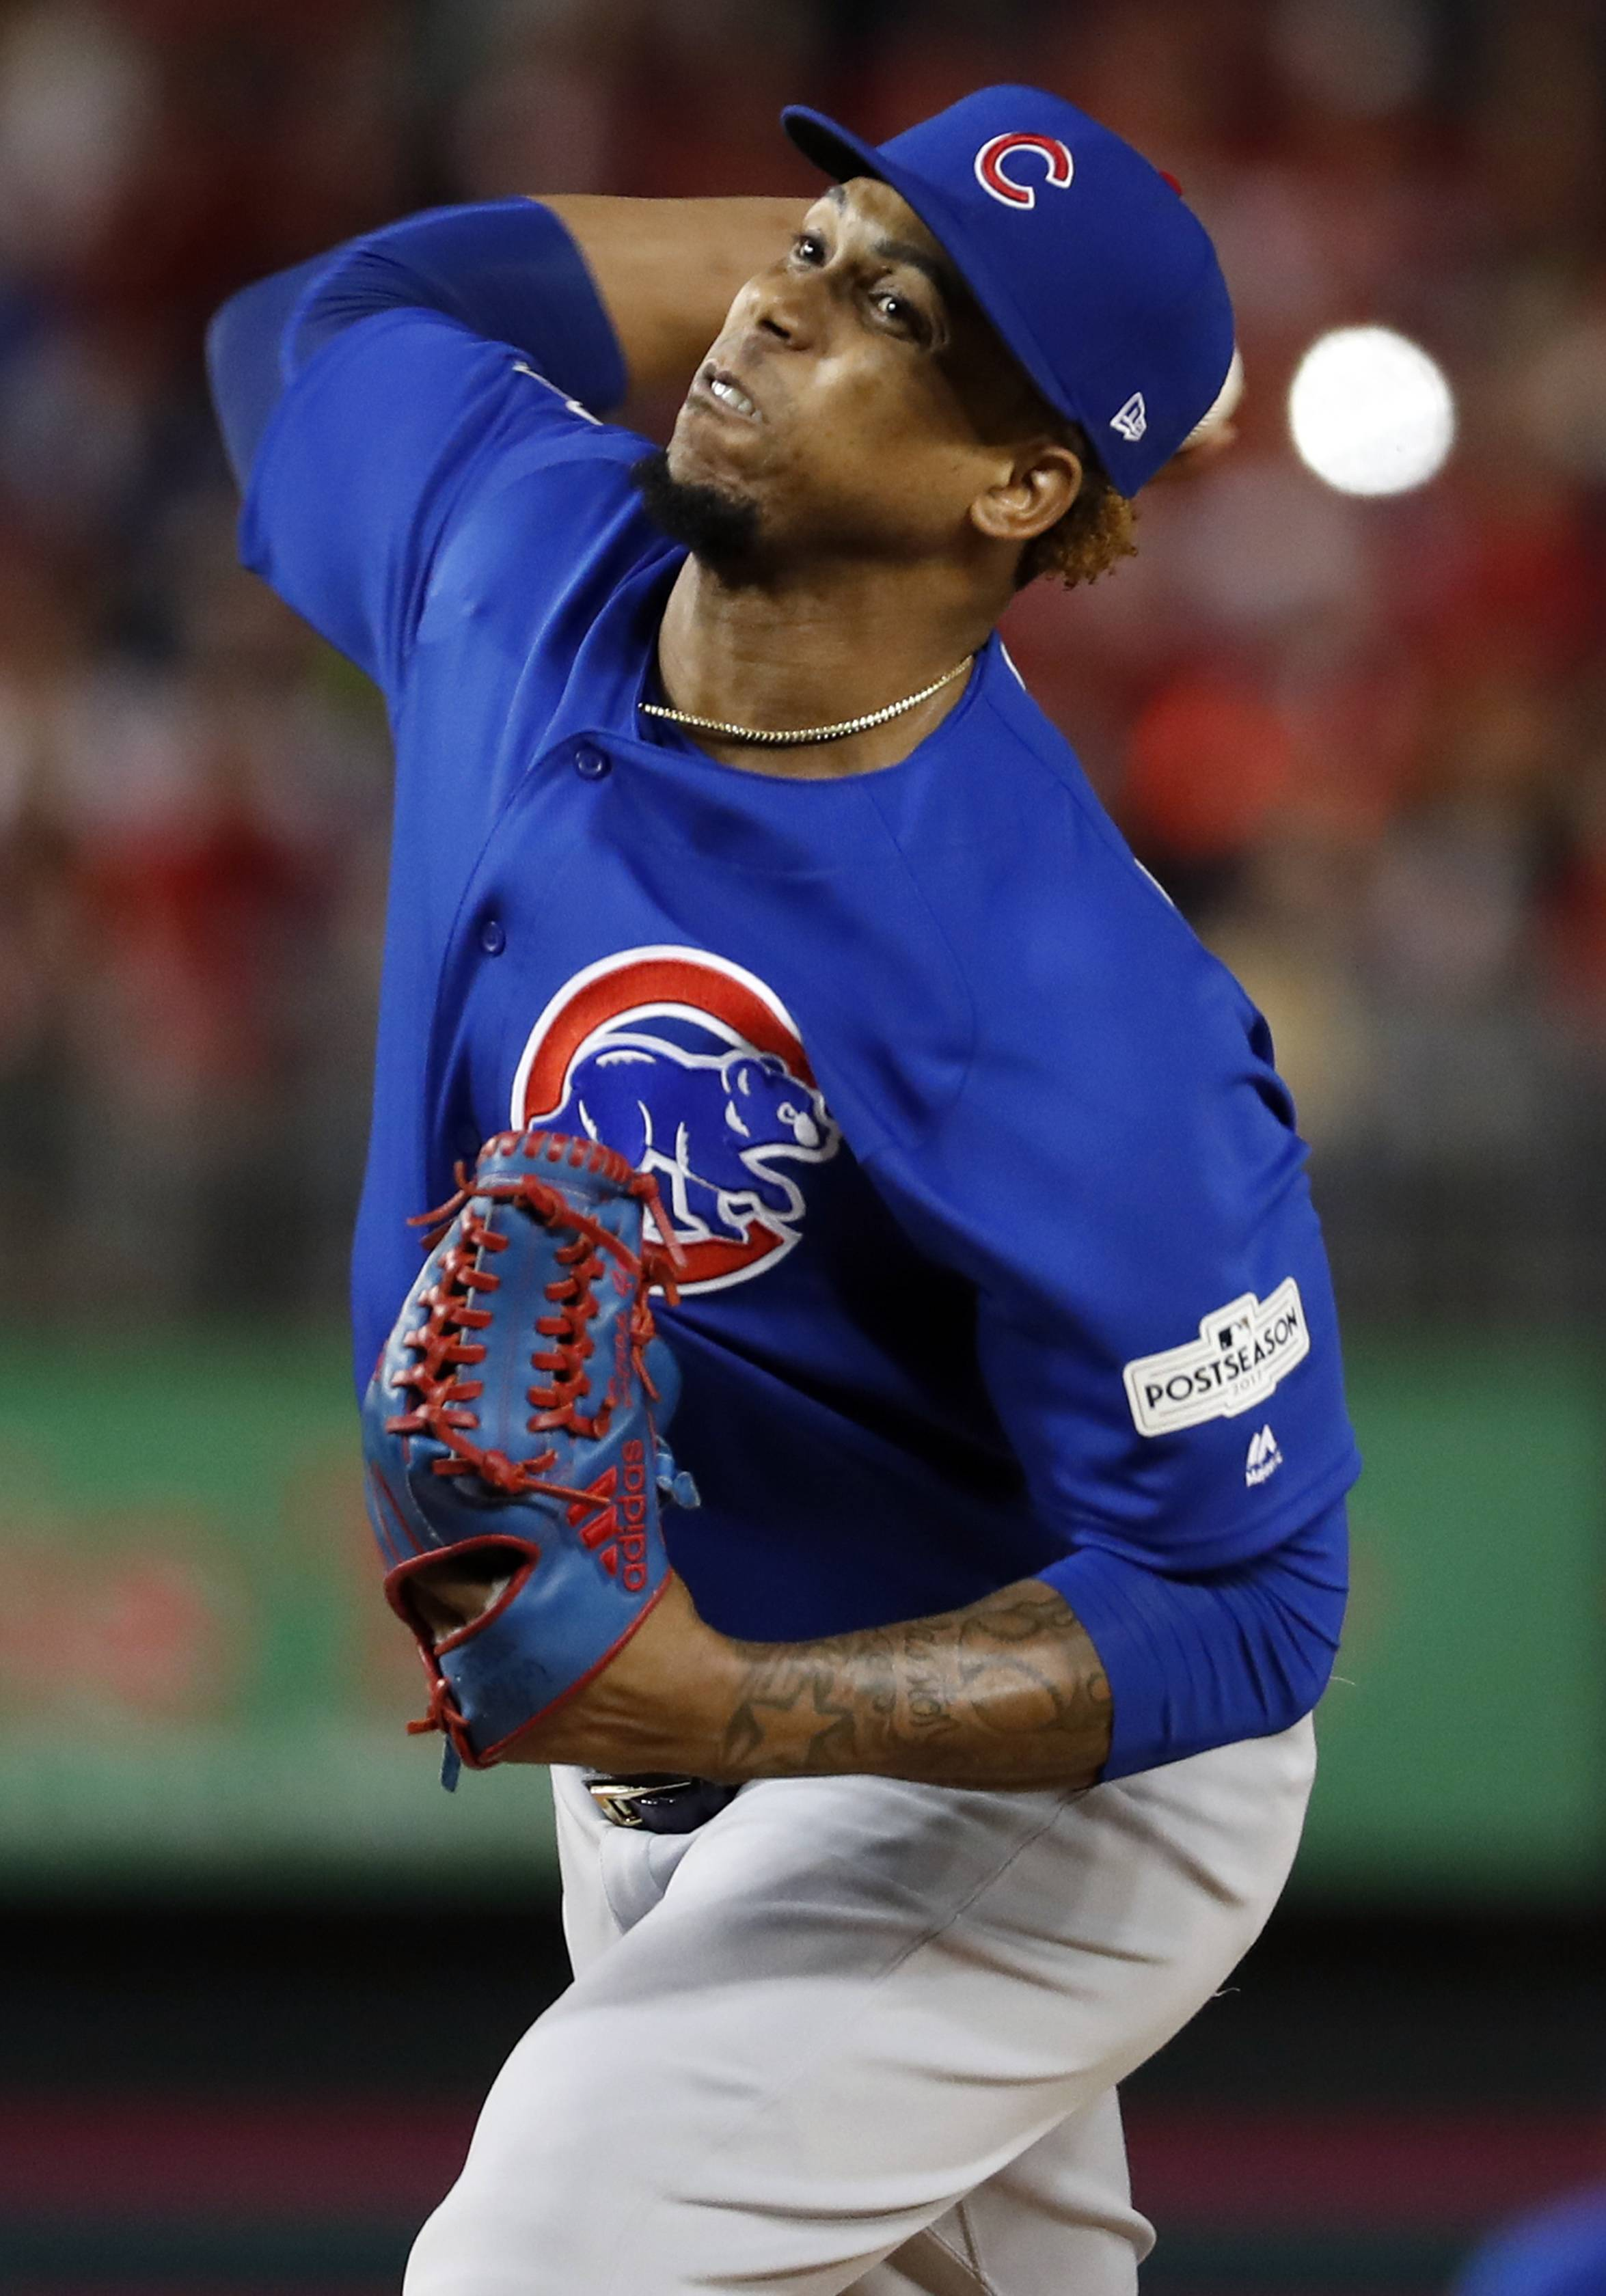 Chicago Cubs relief pitcher Pedro Strop throws during the sixth inning in Game 5 of baseball's National League Division Series against the Washington Nationals, at Nationals Park, Thursday, Oct. 12, 2017, in Washington.